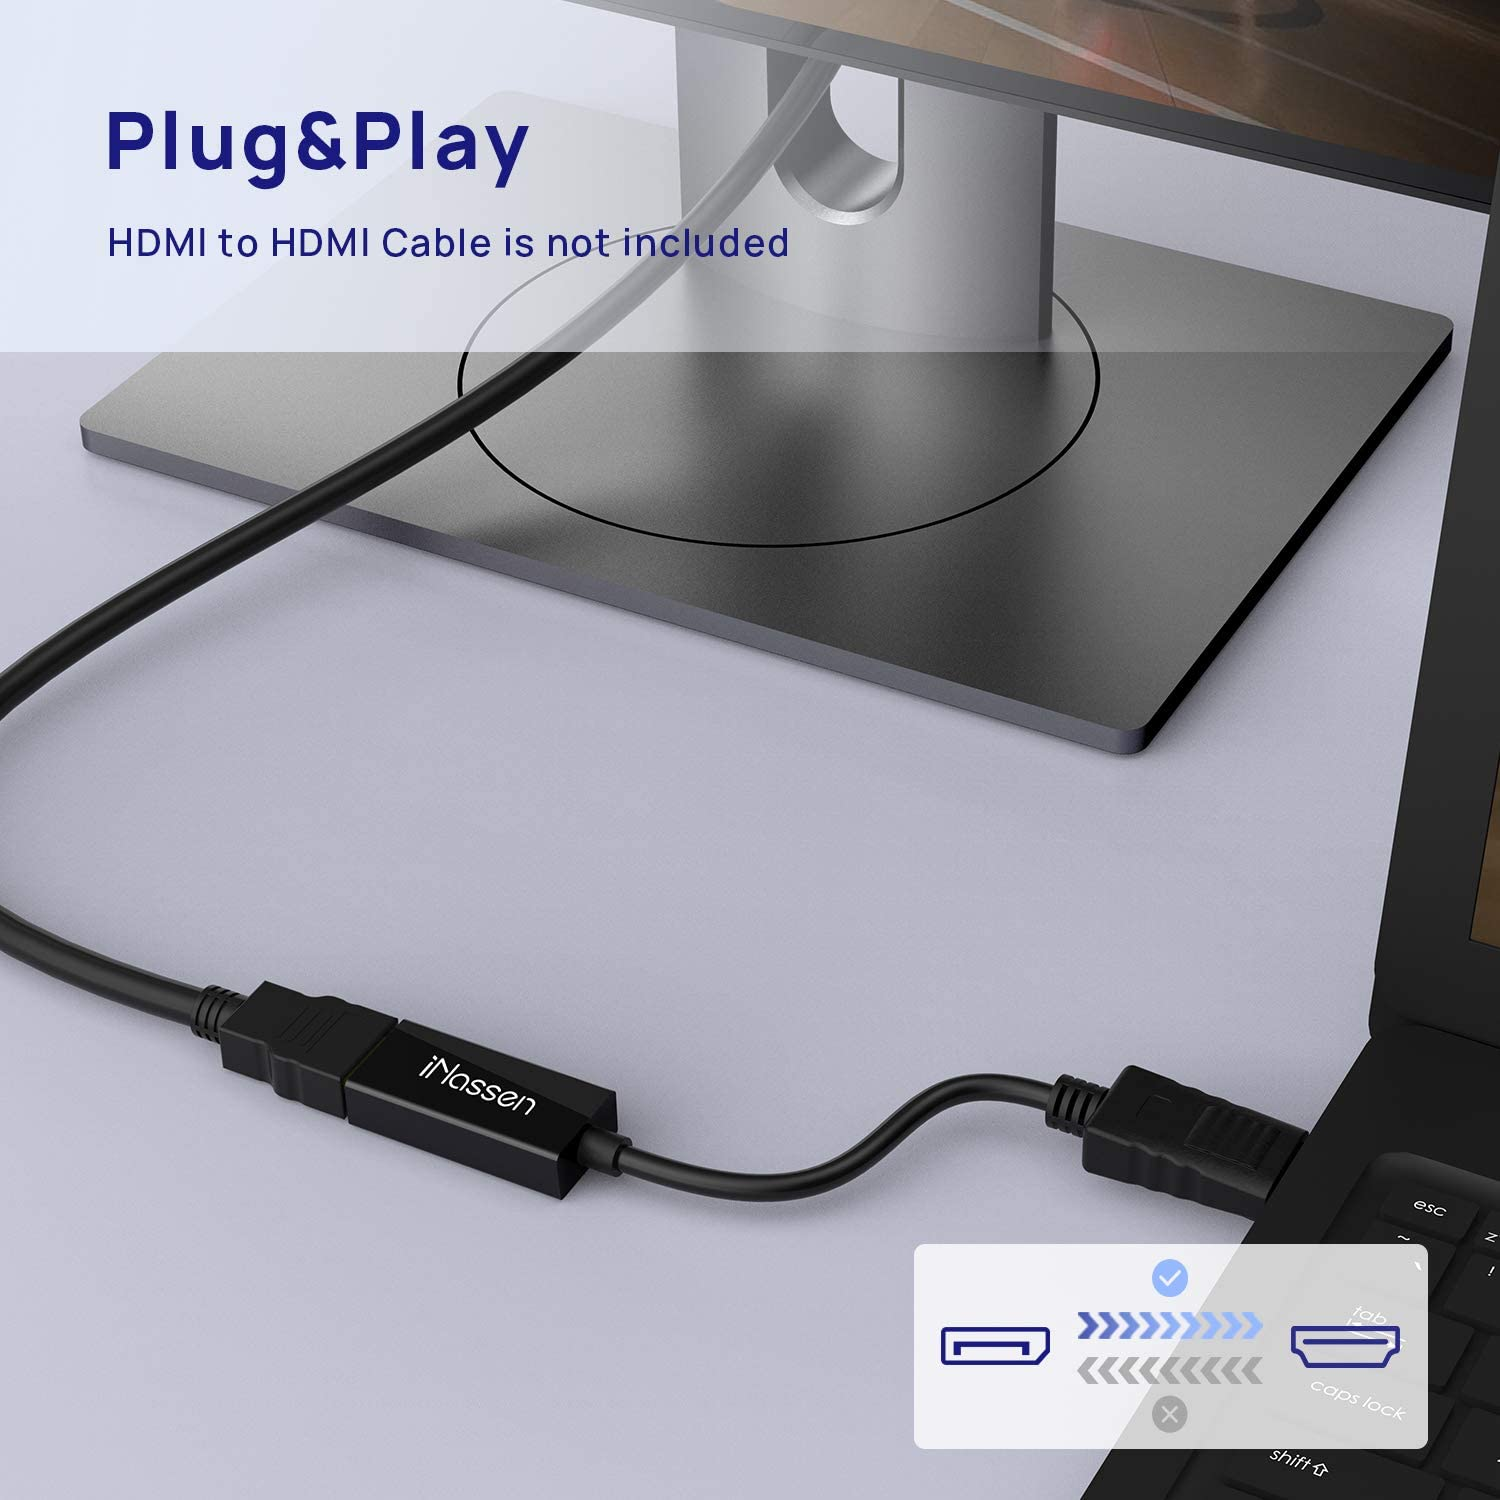 Display Port Projector etc Dell iNassen DP ThinkPad Displayport to HDMI Adapter Male to Hdmi Female Unidirectional Converter with Audio Support 4K@30Hz Compatible with Lenovo HP Asus,HDTV